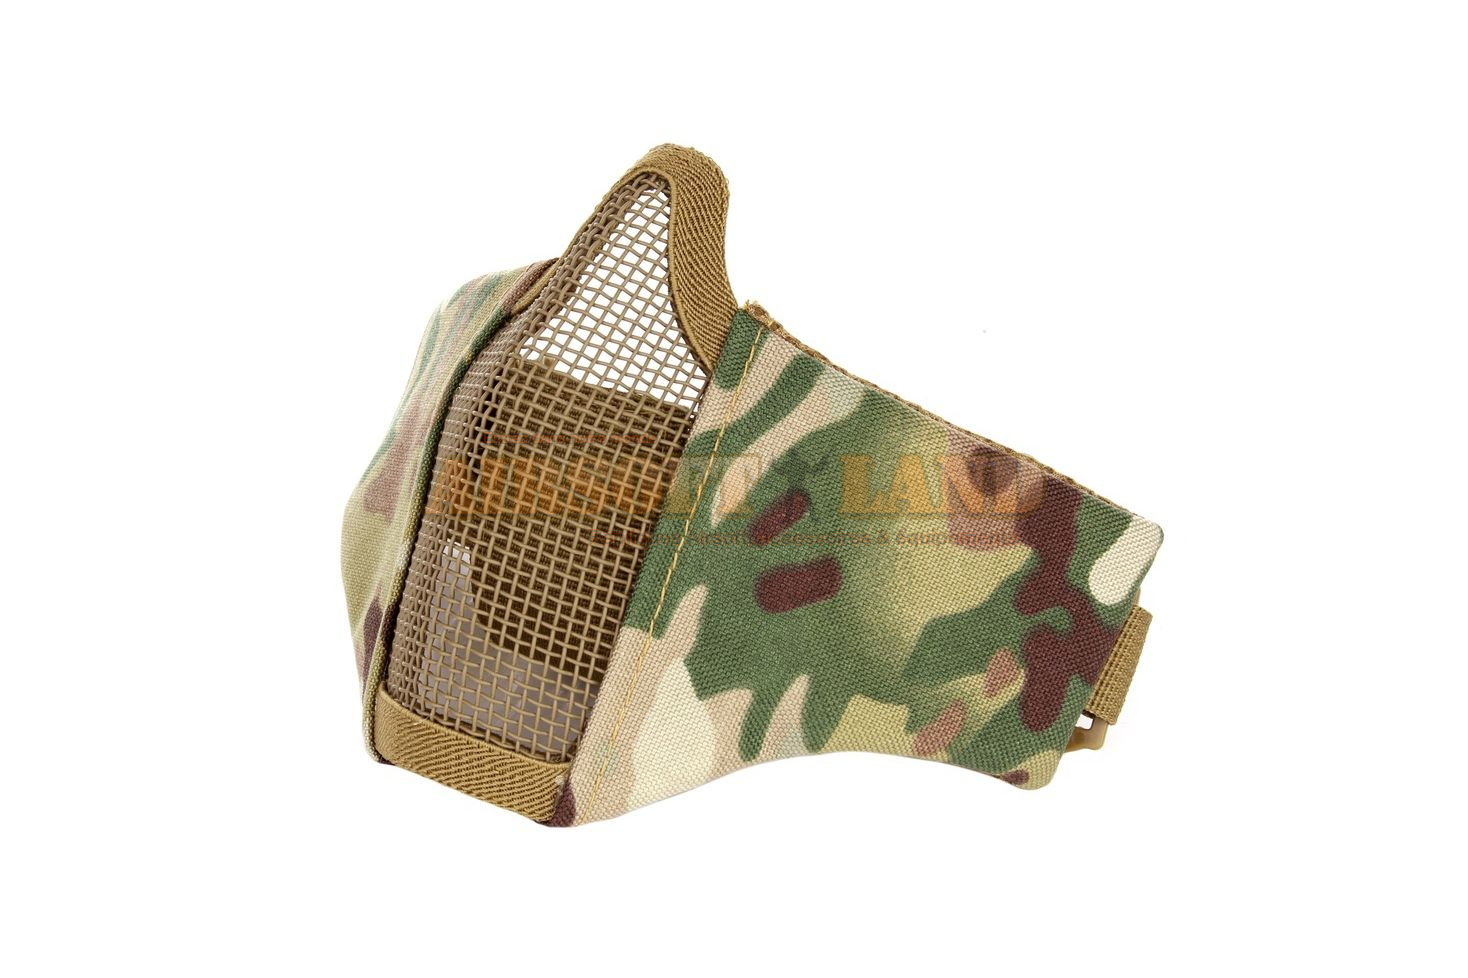 Demi masque grillage neoprene multicam